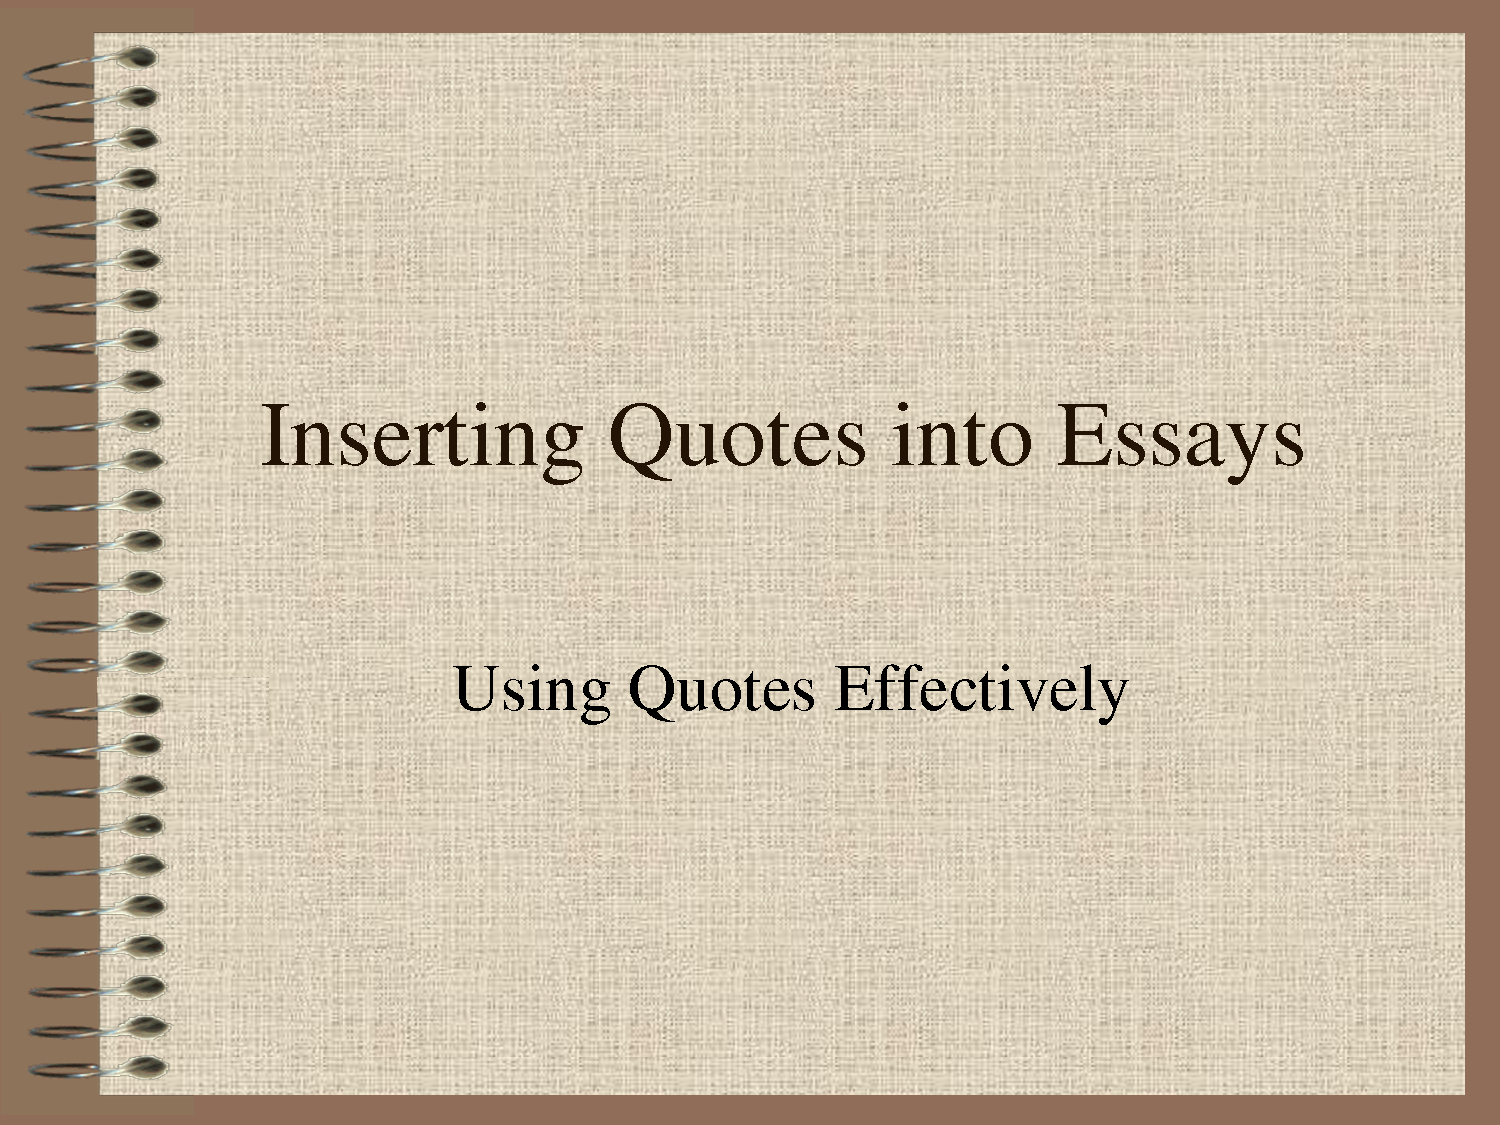 Buy College Essays, Custom Term Papers